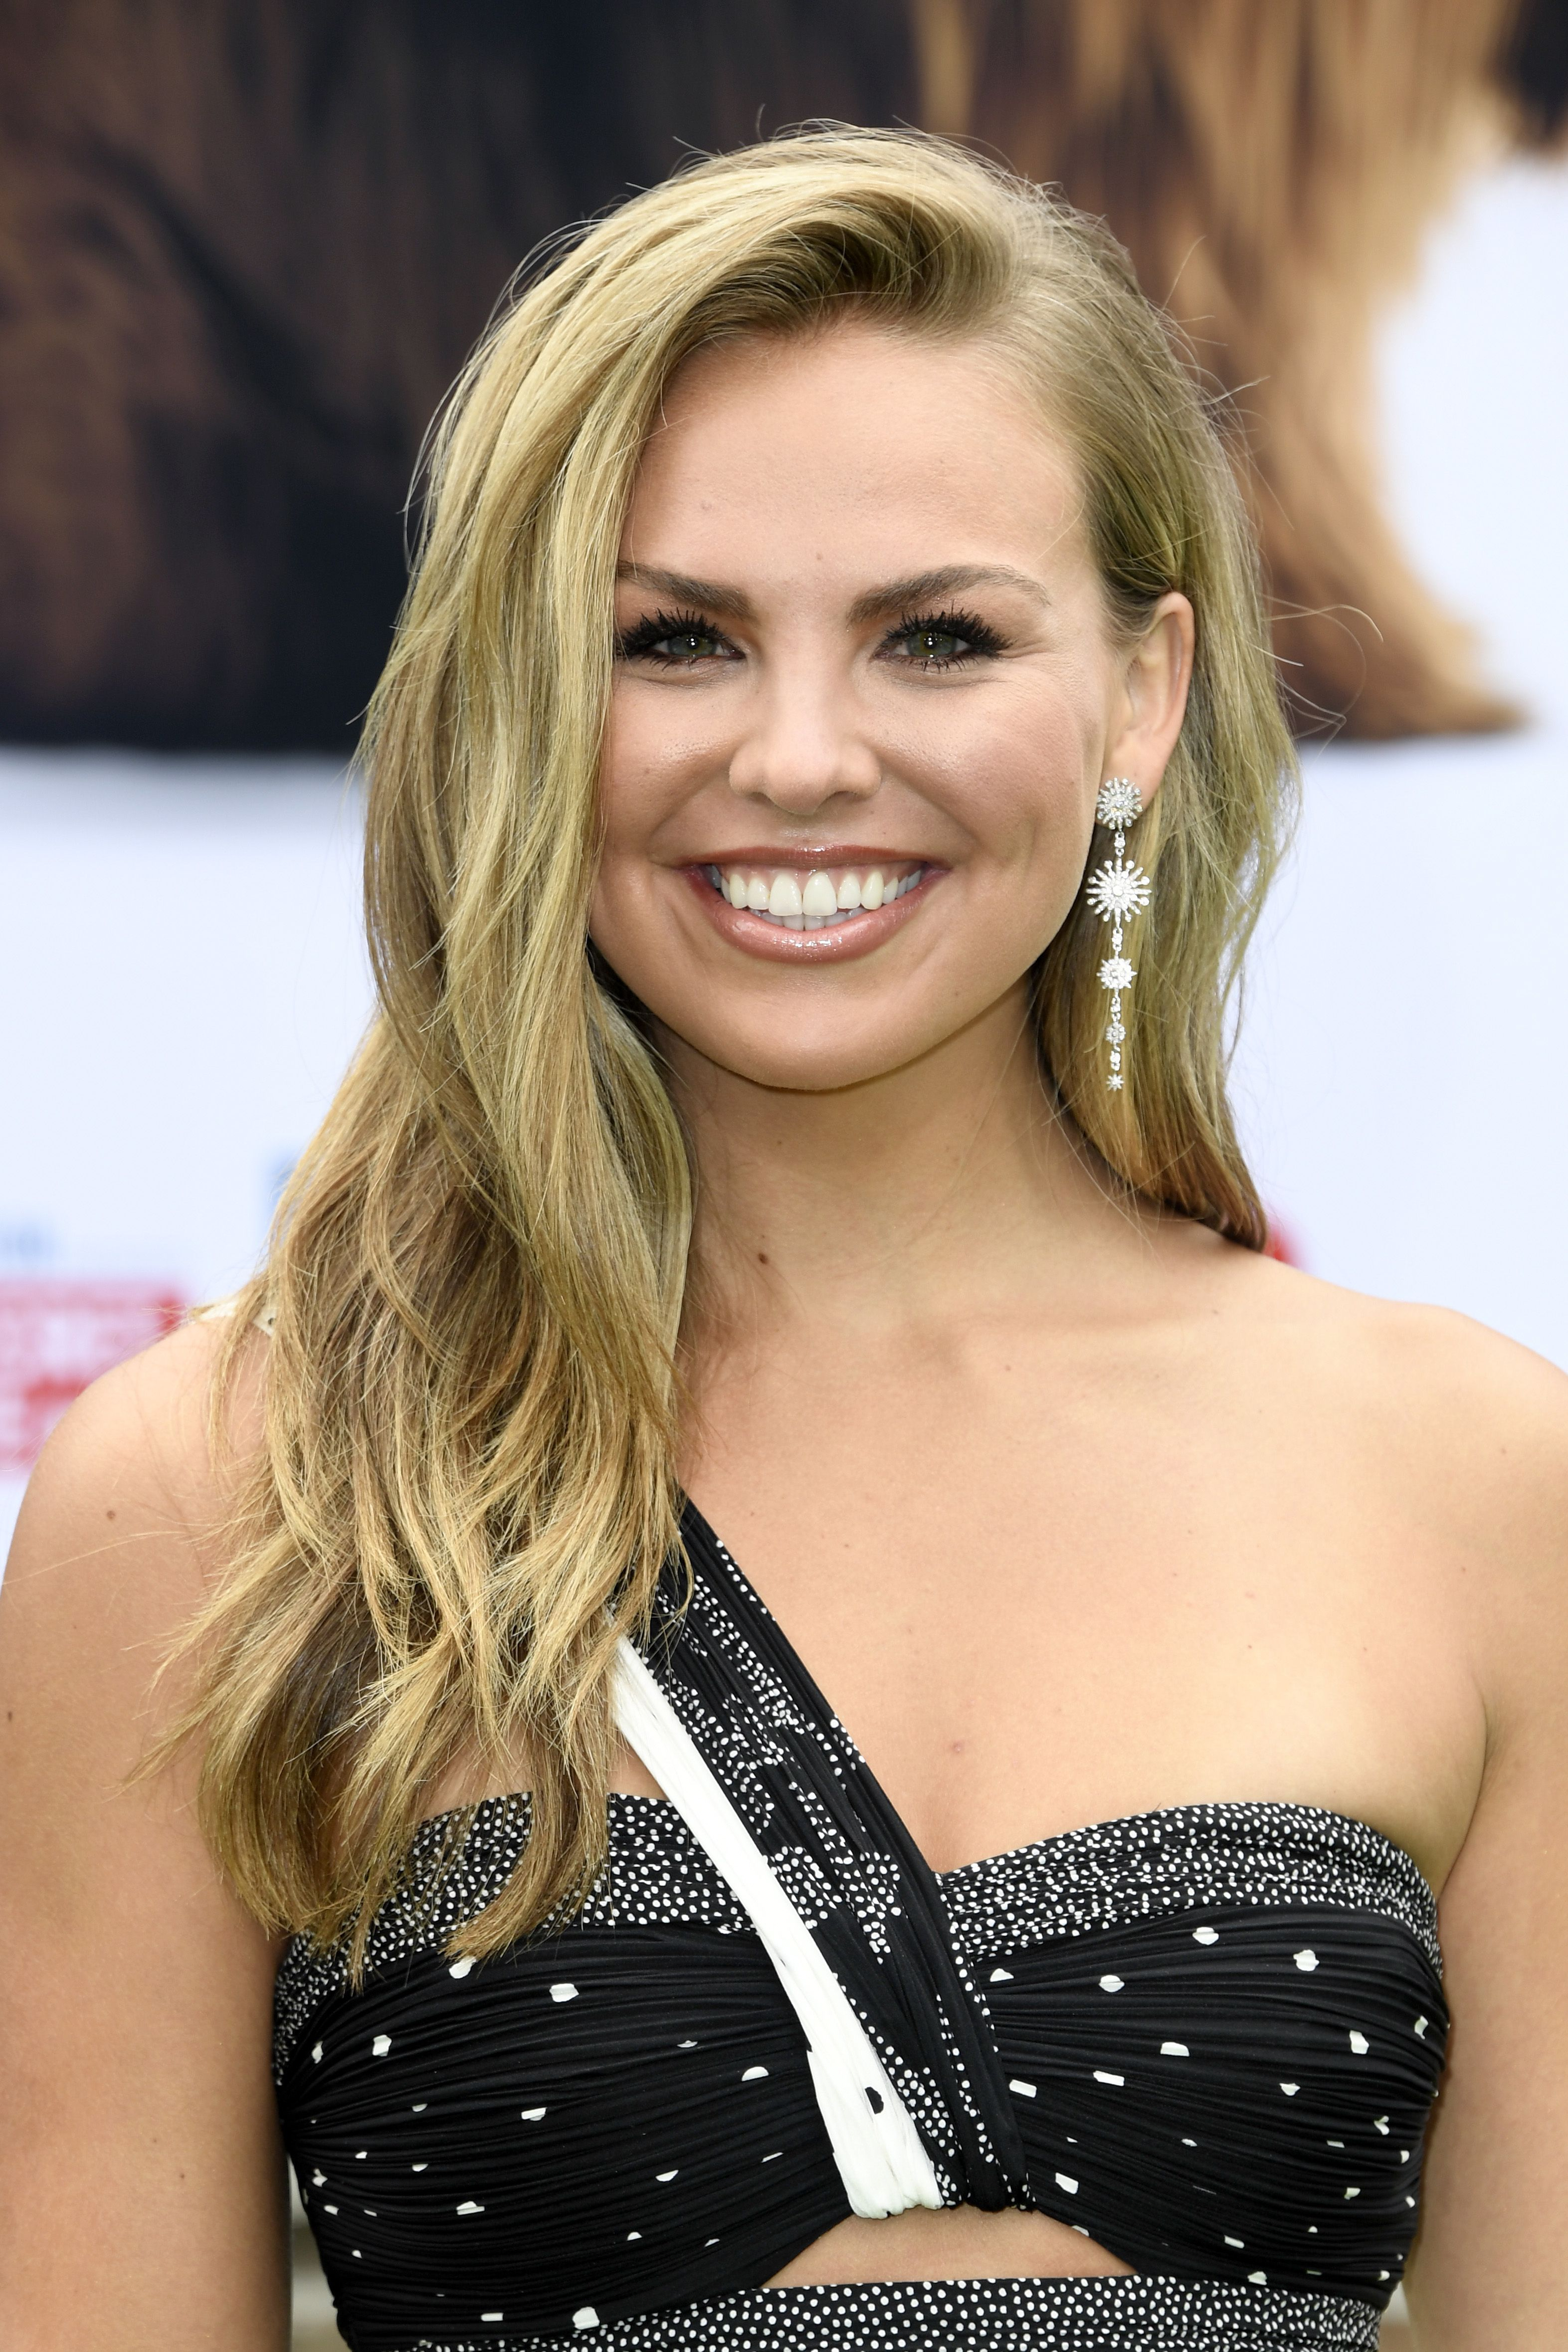 Hannah Brown At The The Secret Life Of Pets 2 Premiere On The Red Carpet Photo Credits Getty Images Hannah Brown Hollywood Glam Bachelorette